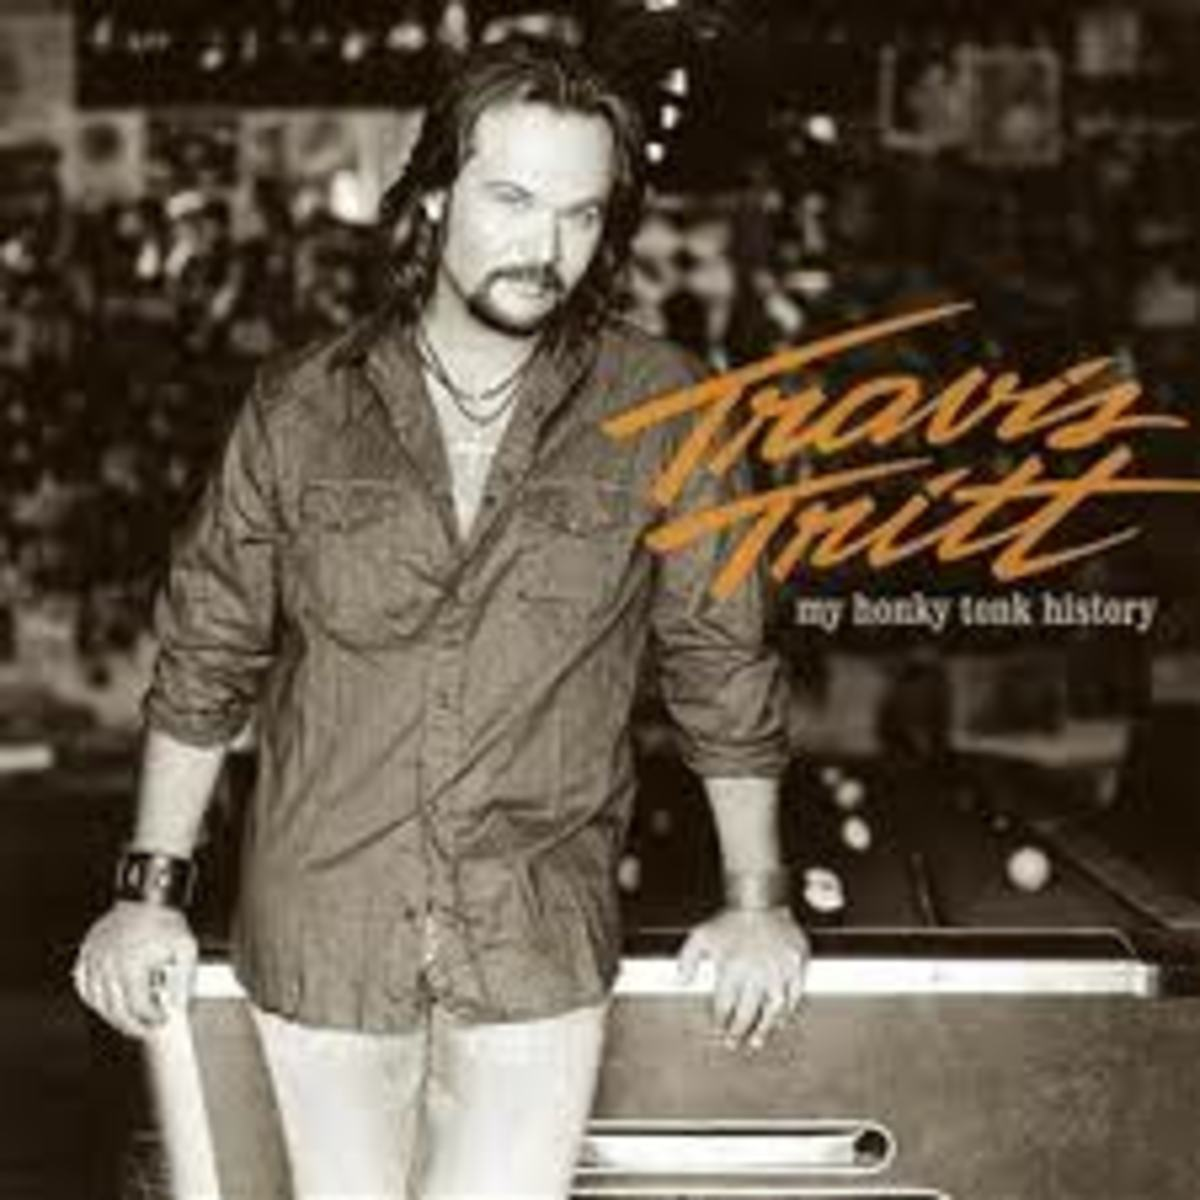 """Travis Tritt Album """"My Honky Tonk History"""", with it's cover photo shot at Pioneer Saloon in Goodsprings, Nevada"""